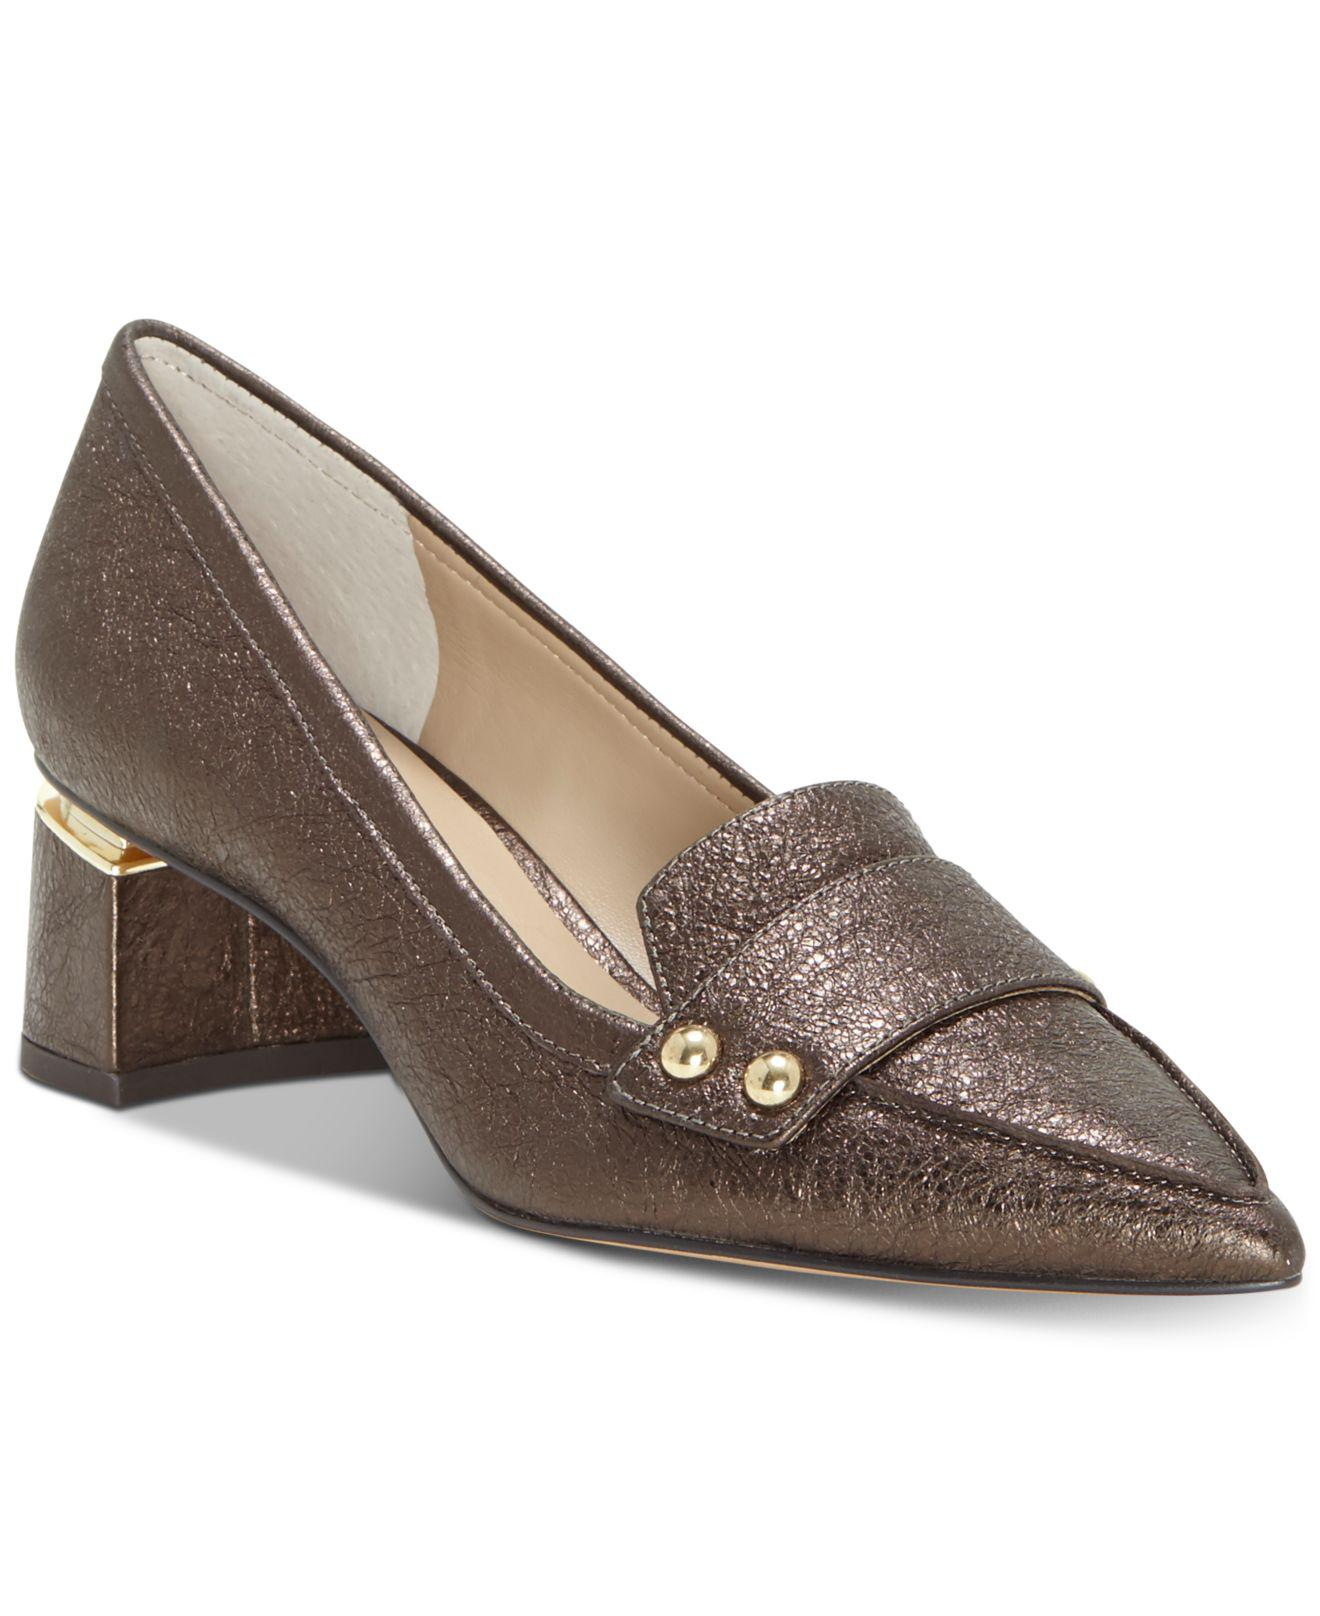 984481e8031 Lyst - Enzo Angiolini Dainey Dress Loafers in Metallic